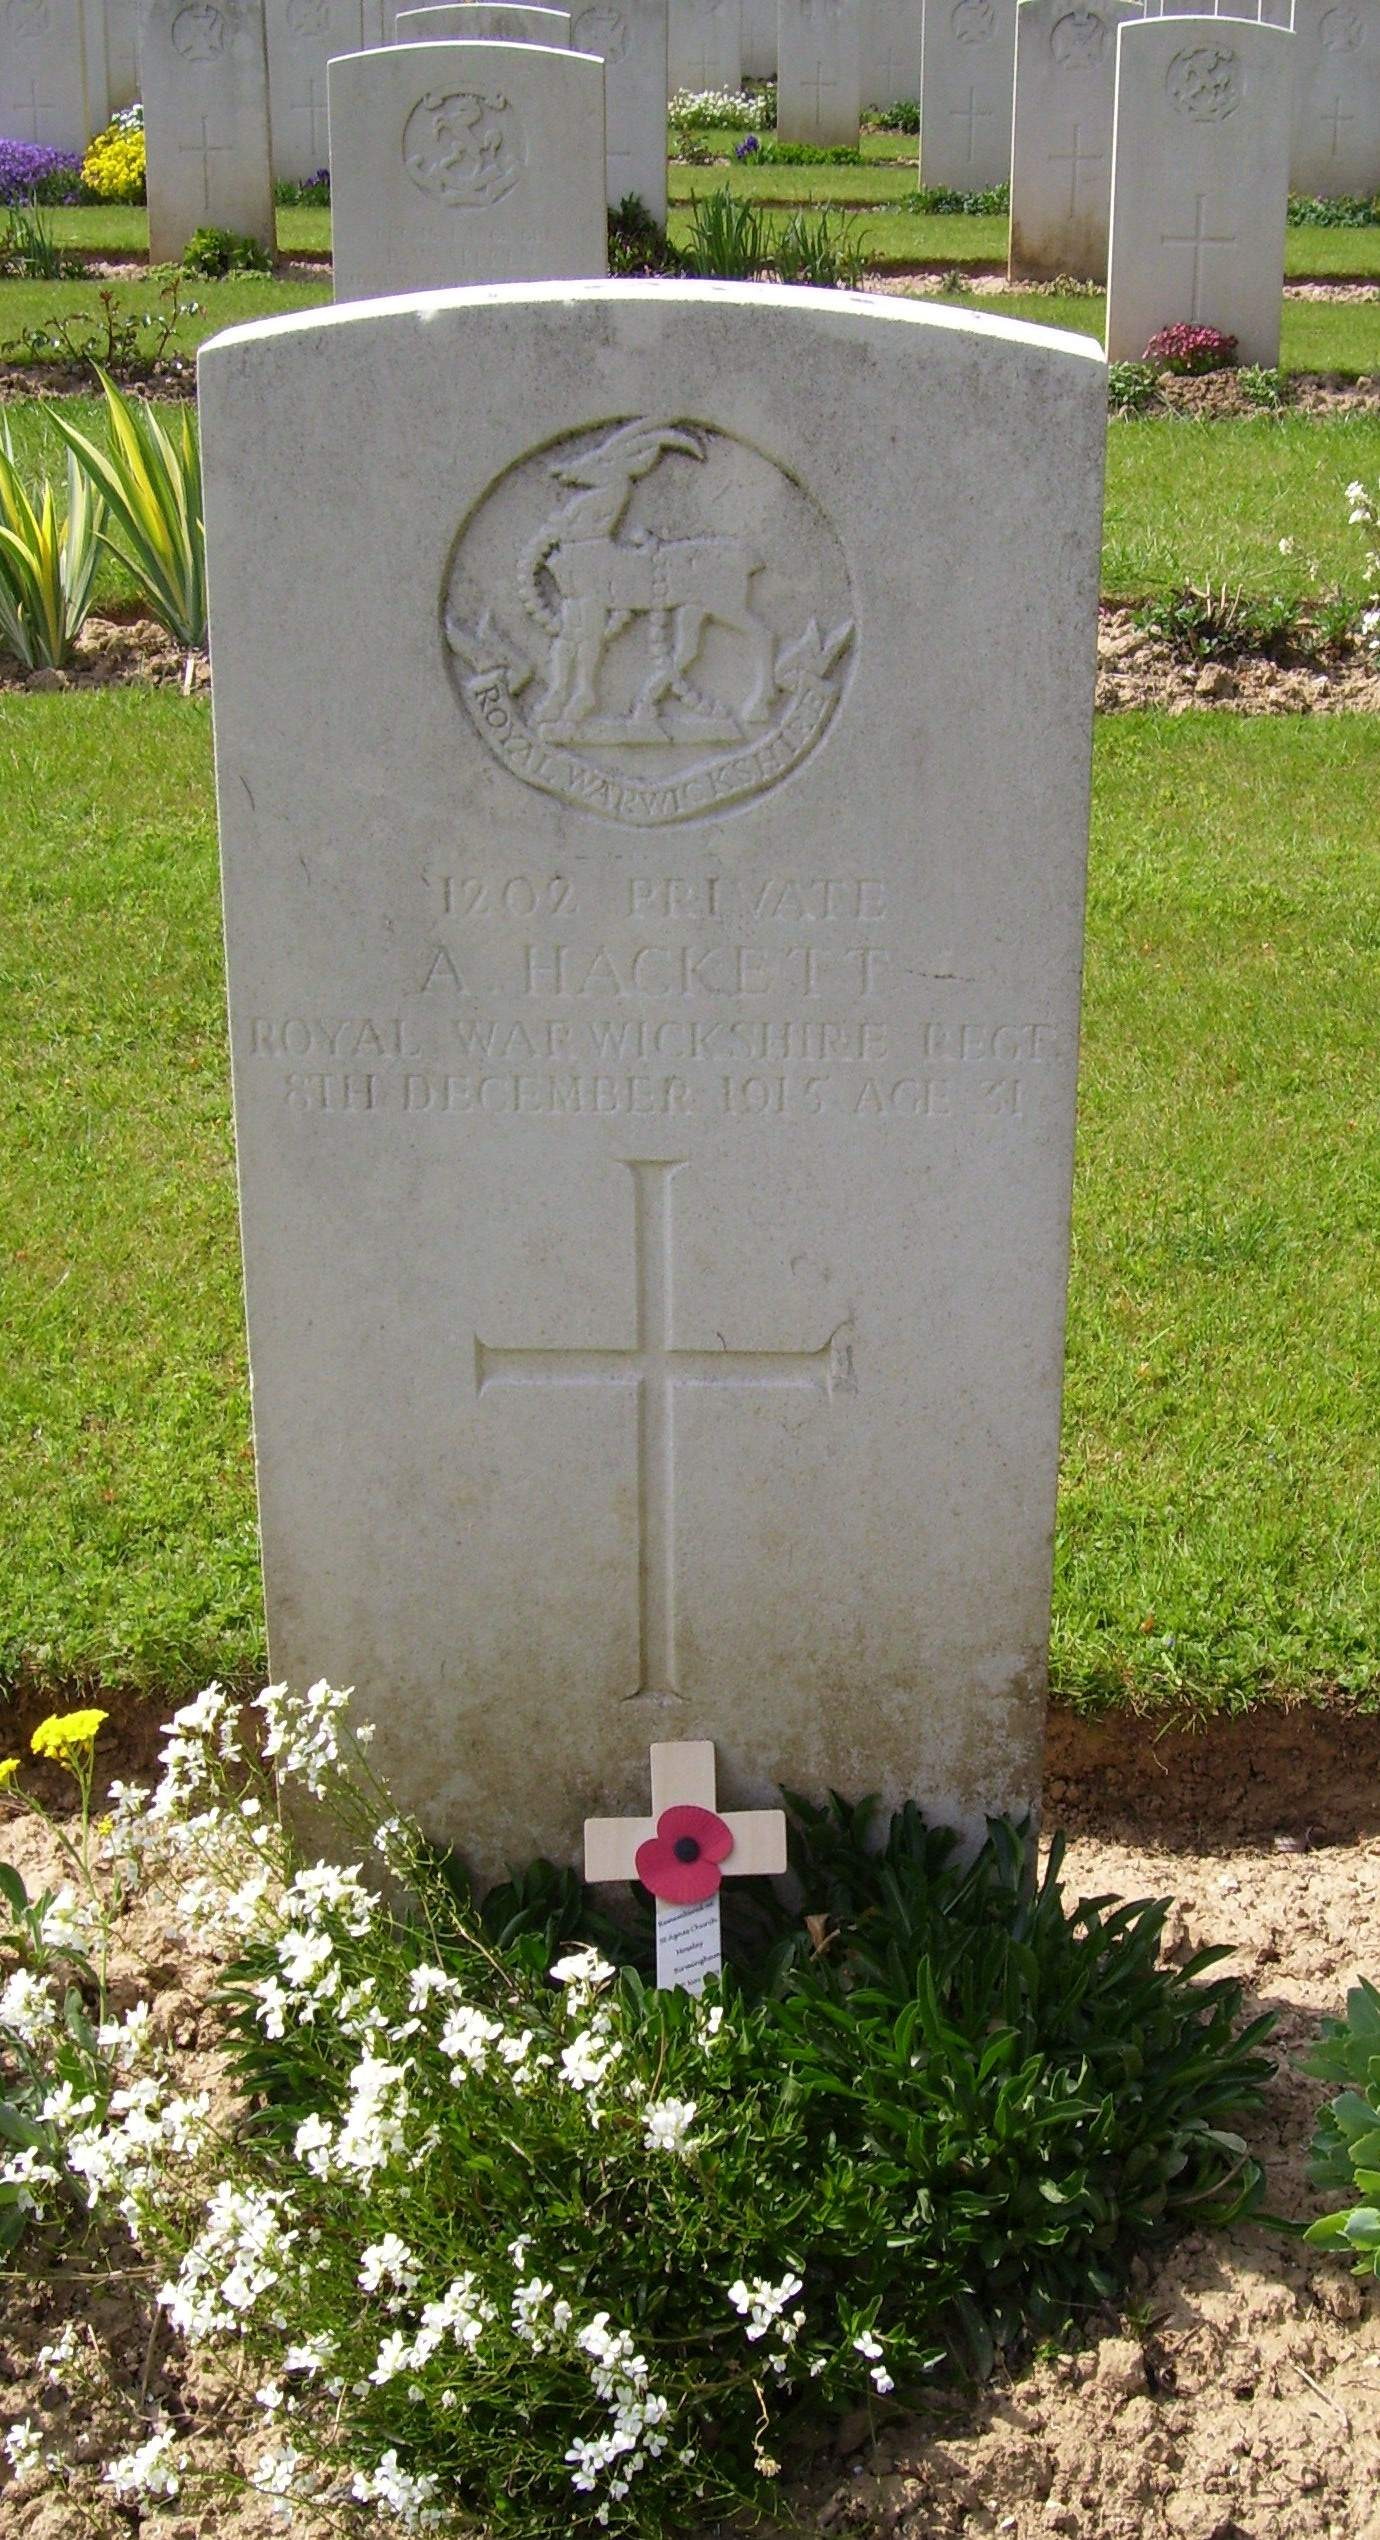 Remembrance/ArthurHackettGrave-trimmed.jpg